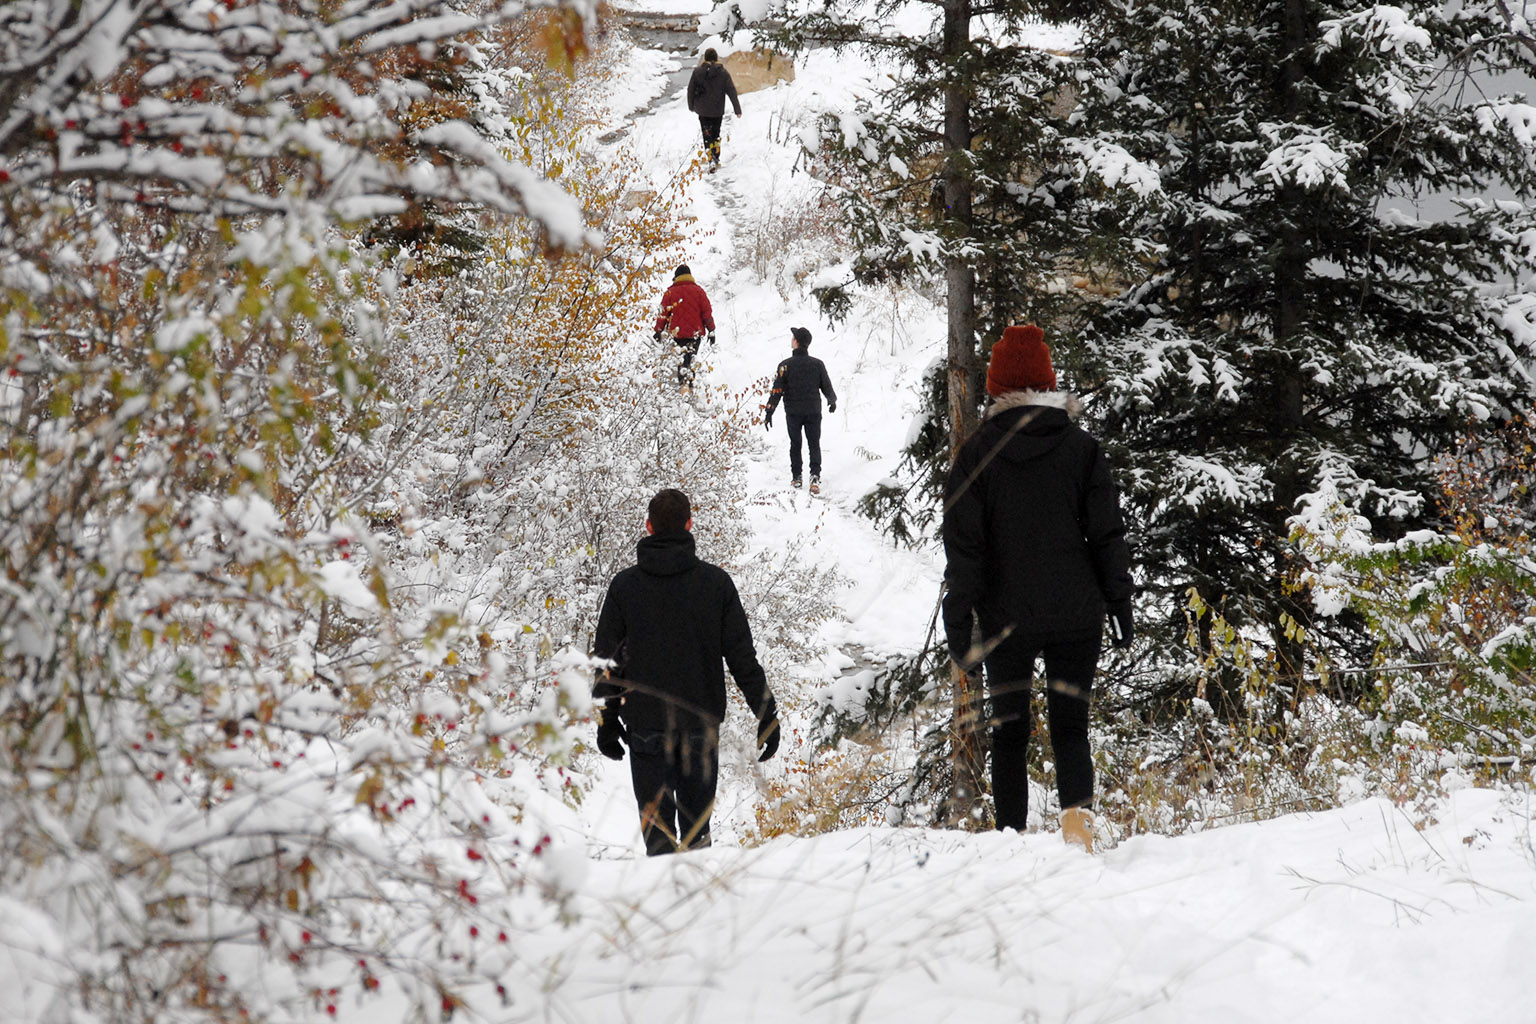 Students walking through Hudon's Hope backcountry